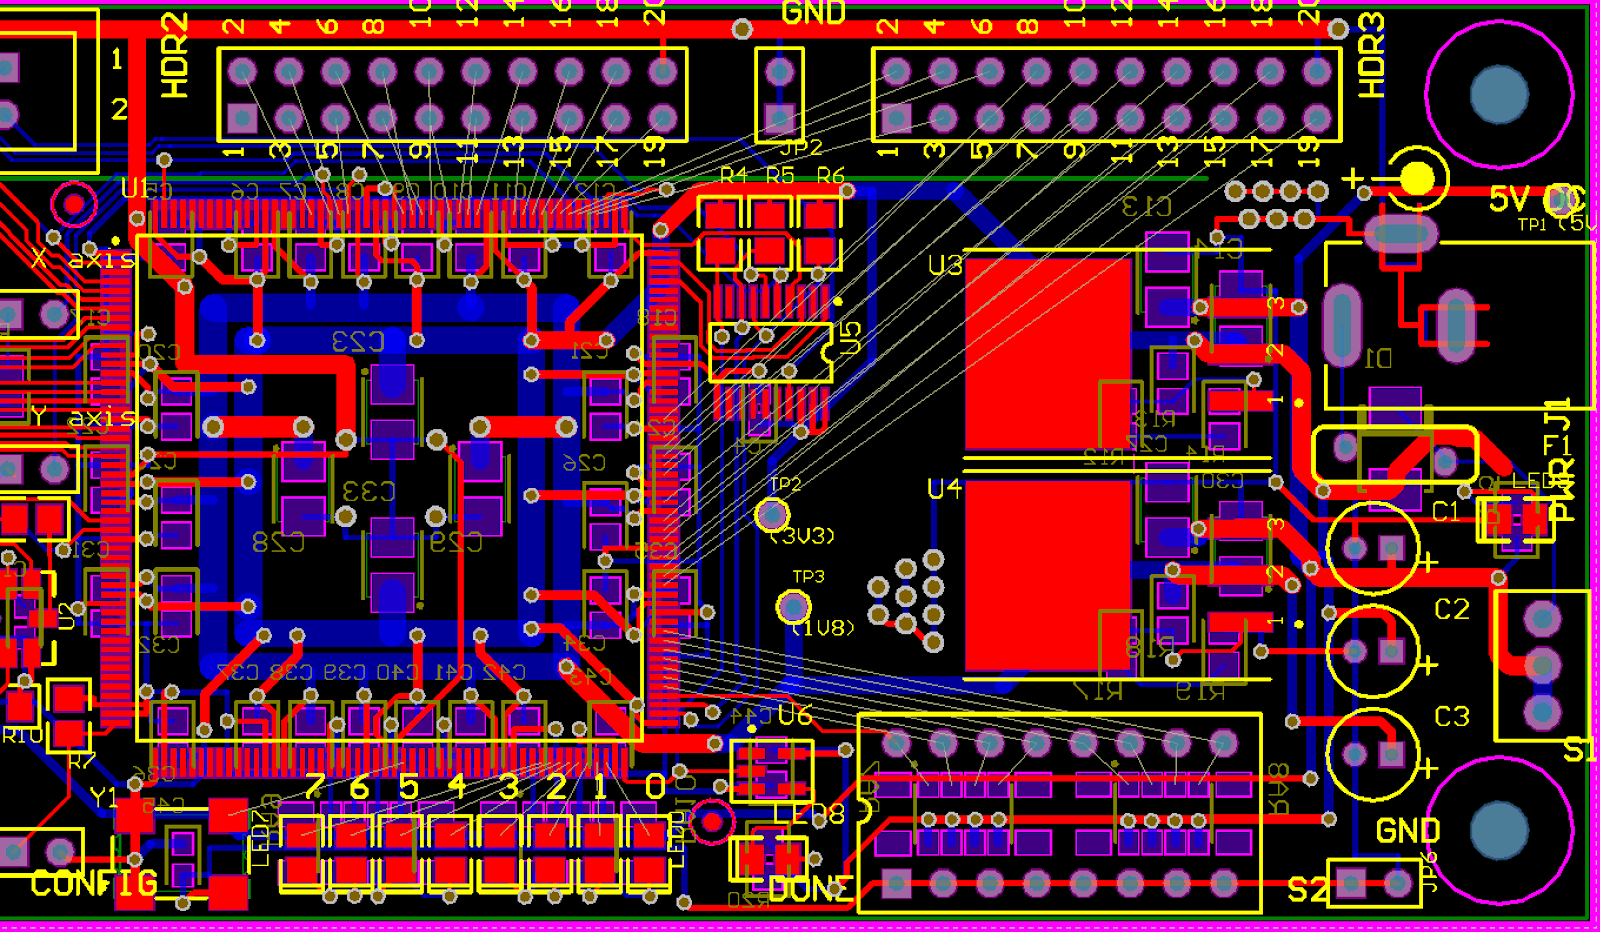 To Autoroute Or Not A History Of Failed Design Automation How Did I Do The Printed Circuit Board Layout In First Place Pcb Autorouter Before